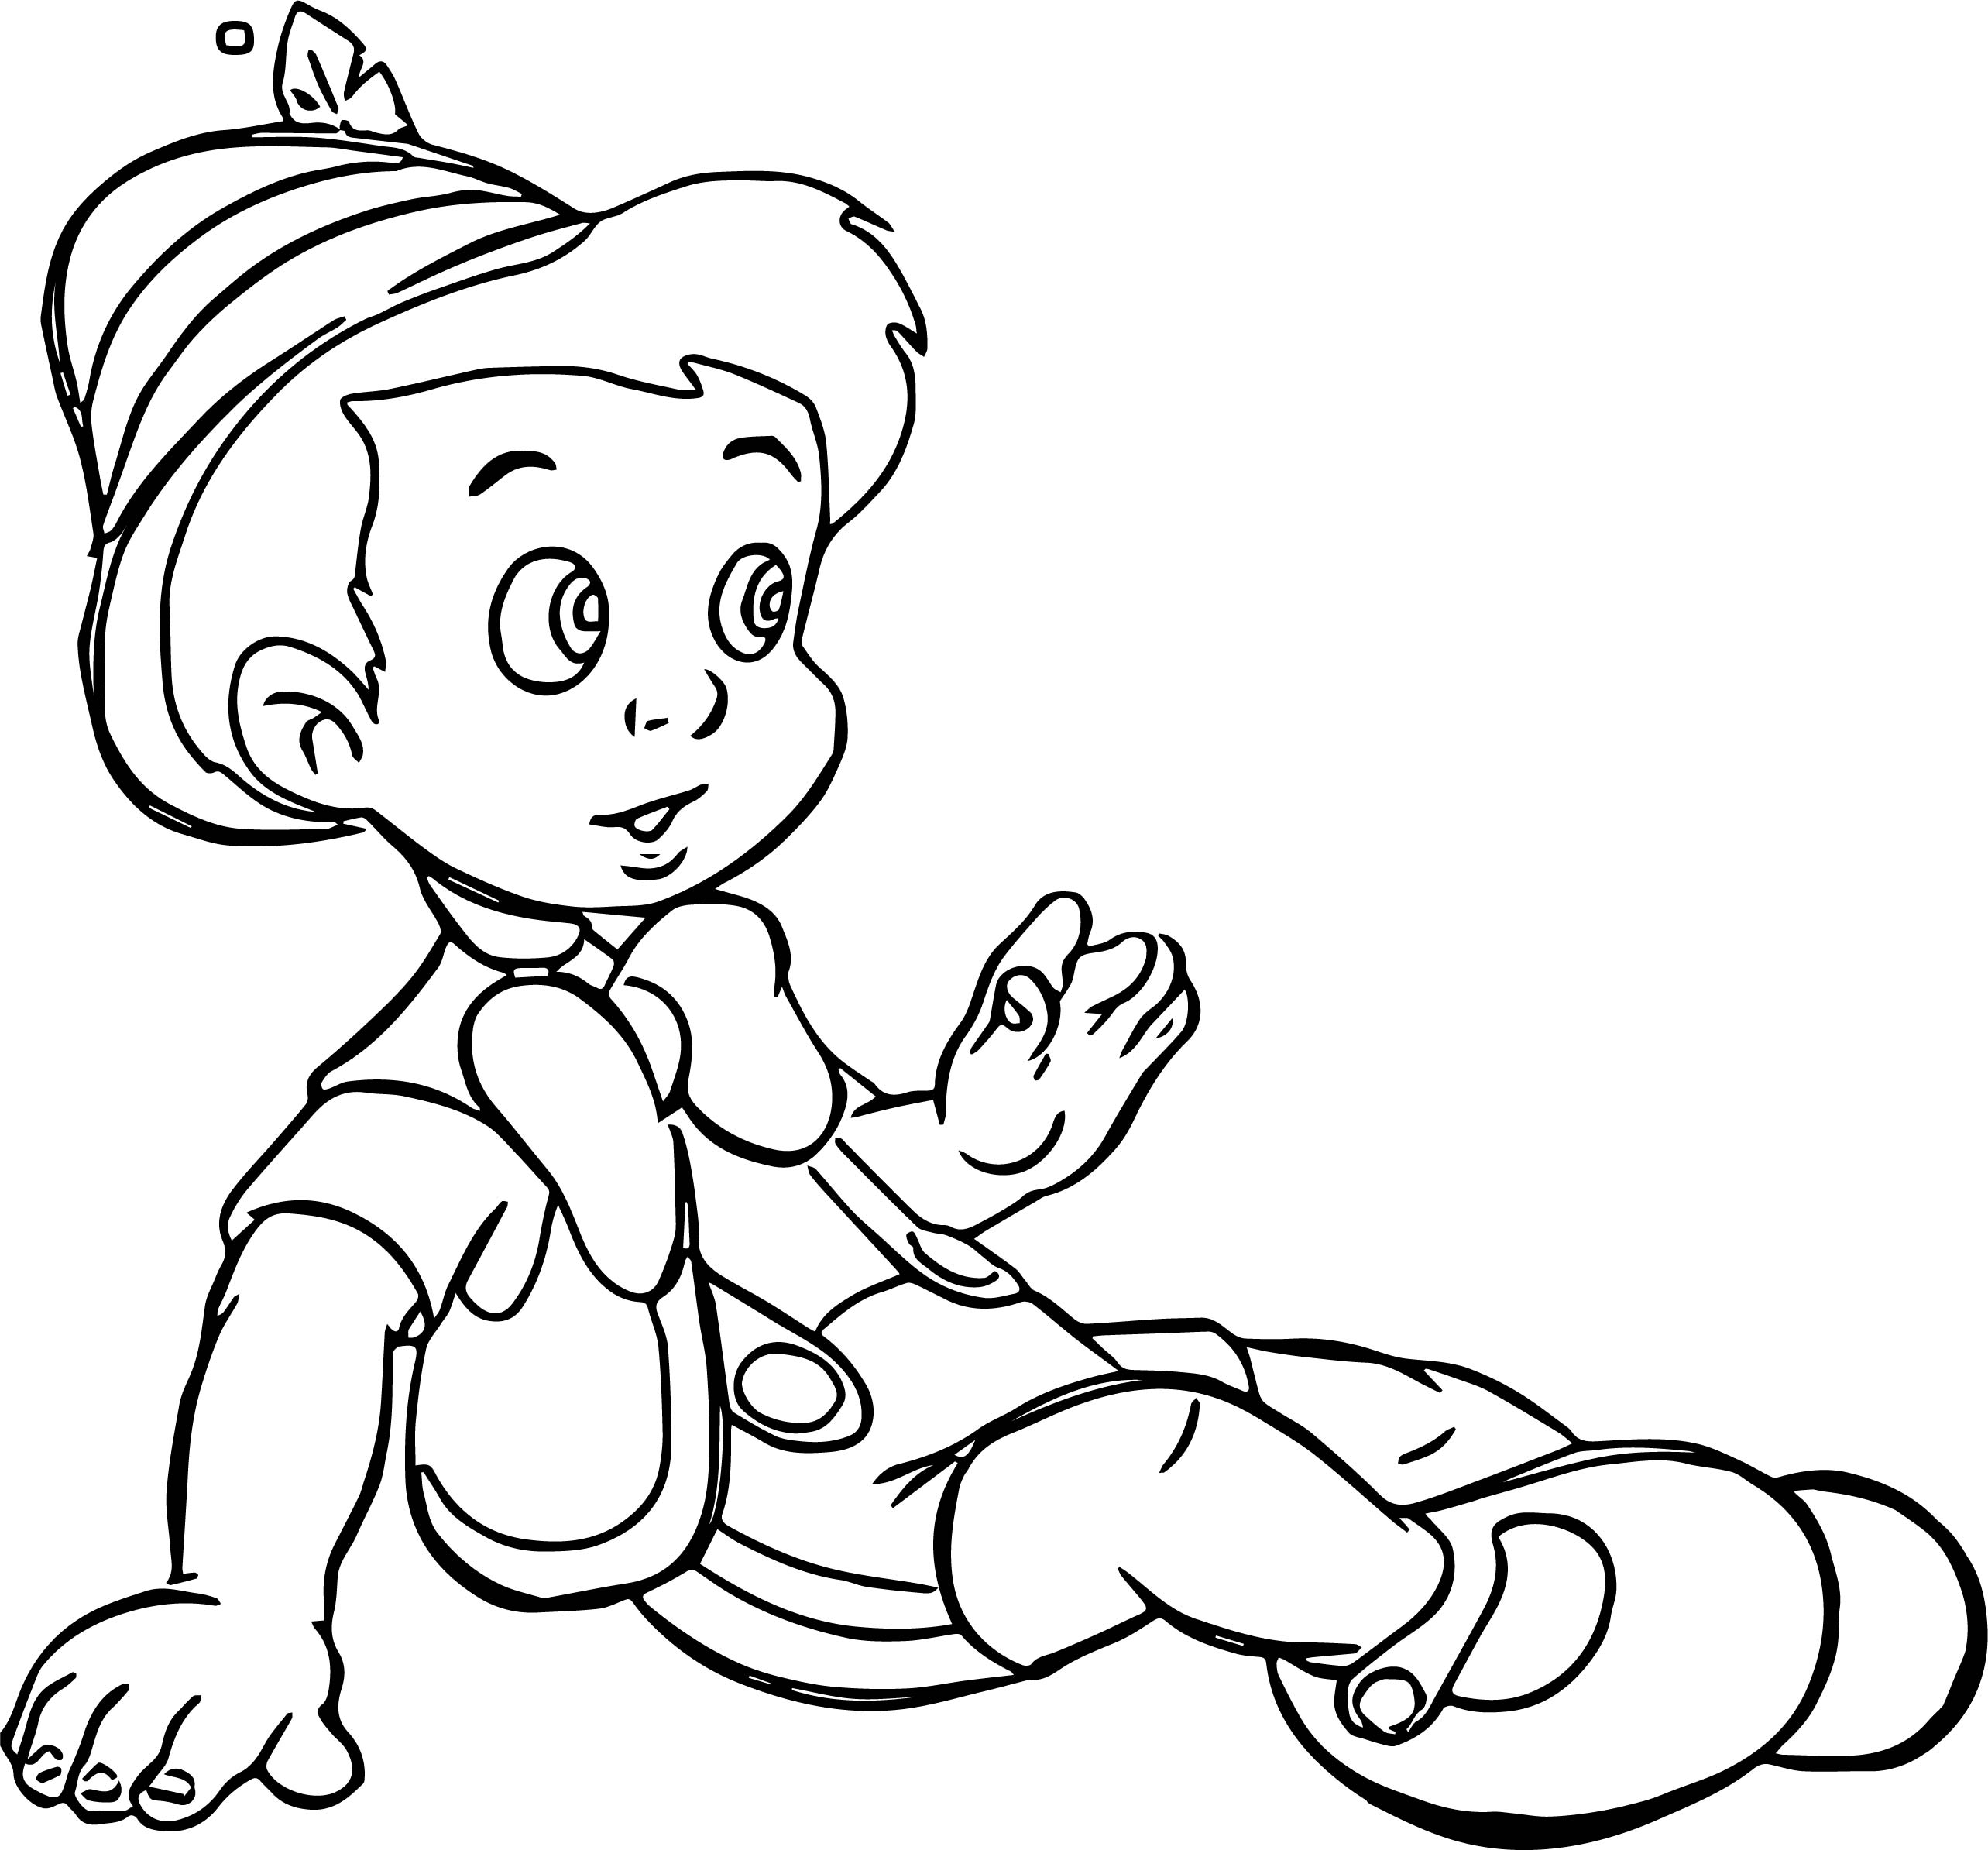 pinocchio real boy coloring page